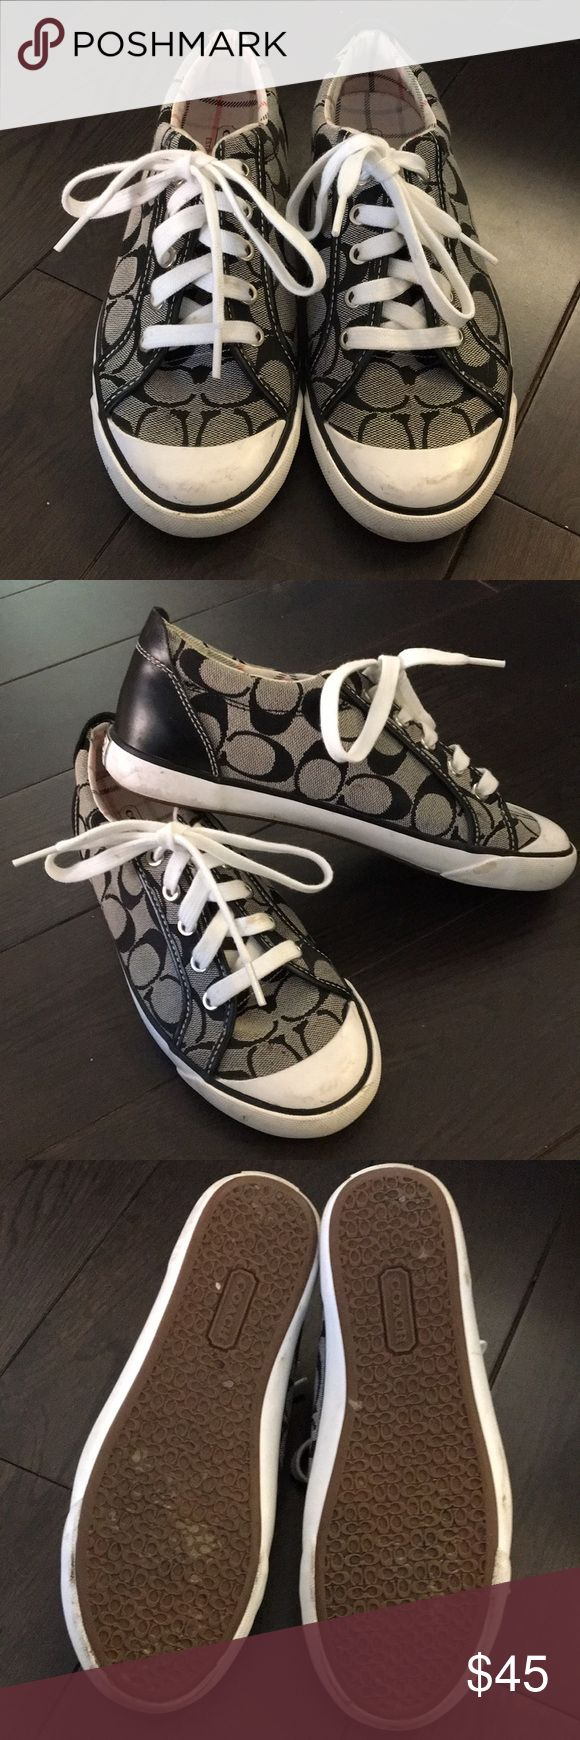 Coach sneakers Coach sneakers - converse style in light black with large dark black C's. Mint condition and lightly worn, minor marks on the toes as pictured. Extremely comfortable! Coach Shoes Sneakers